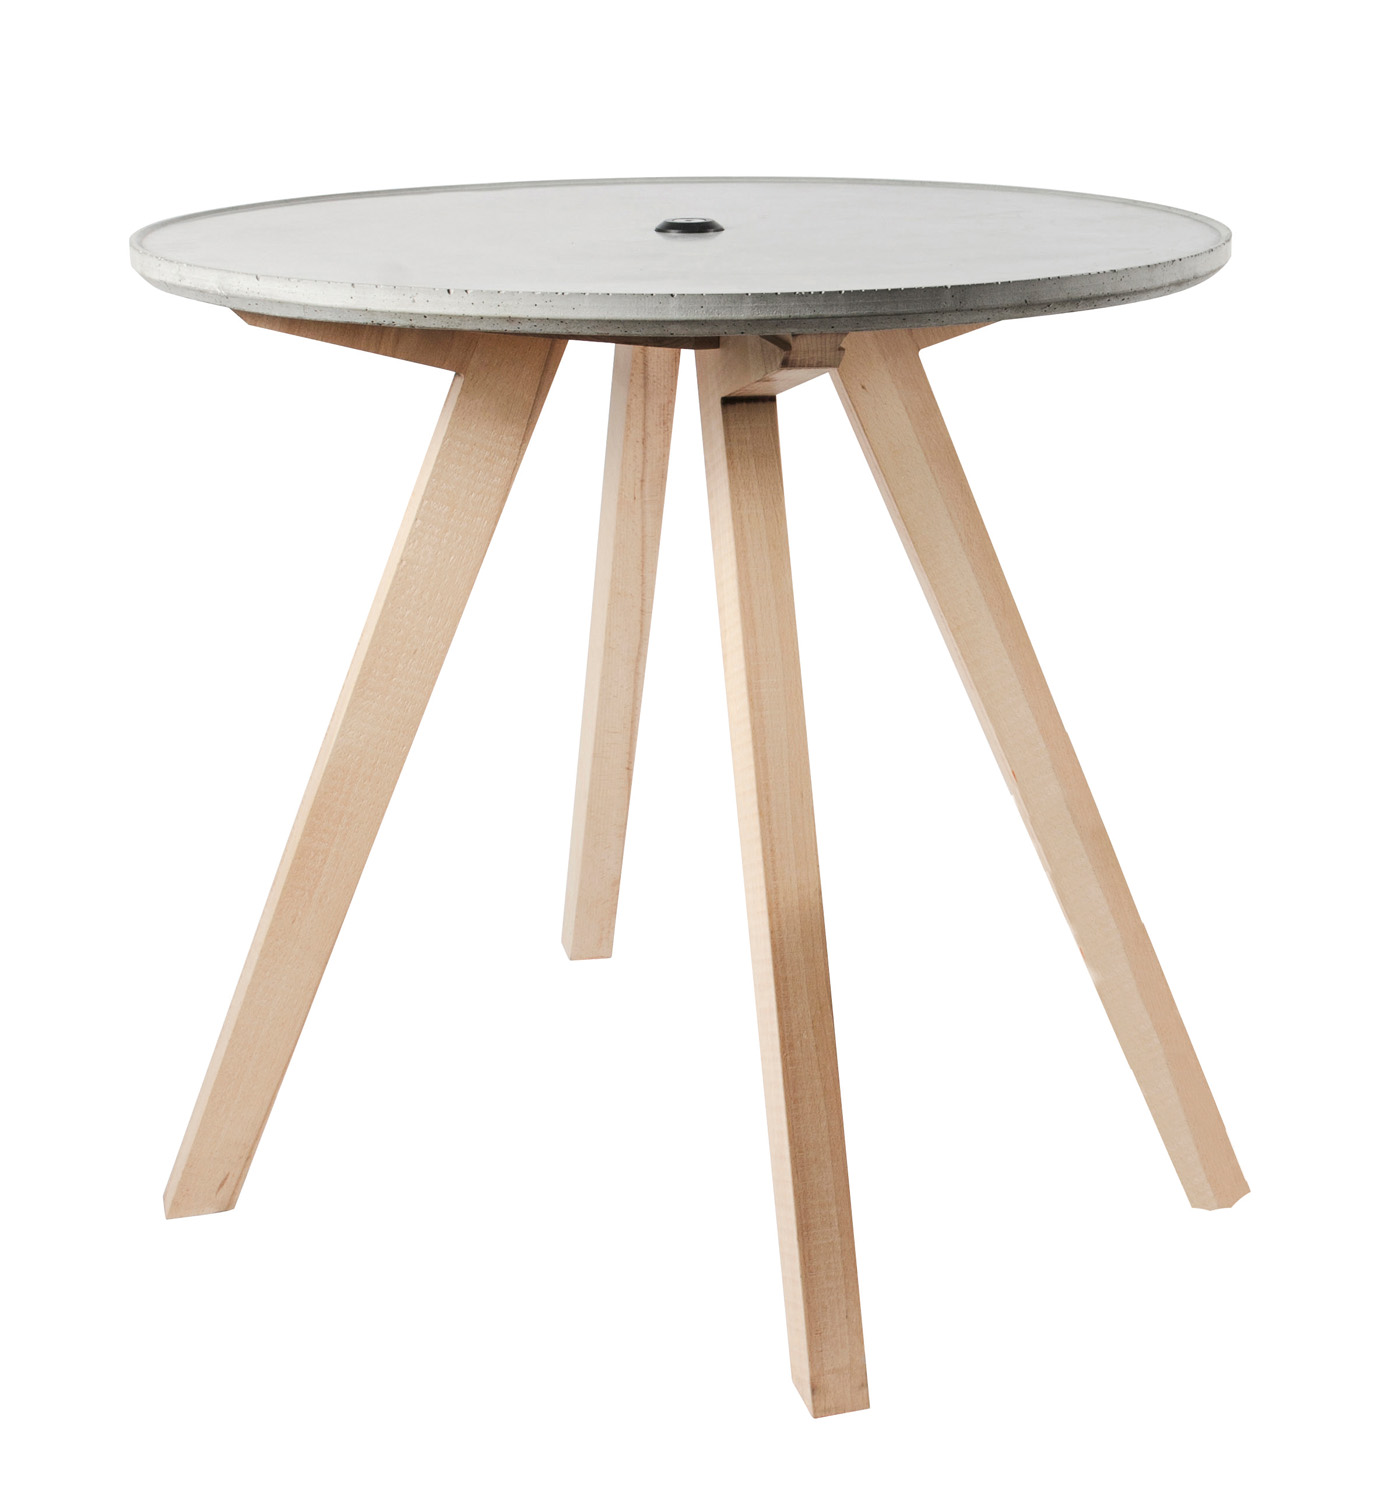 Bu table, $1199, meizai.com.au